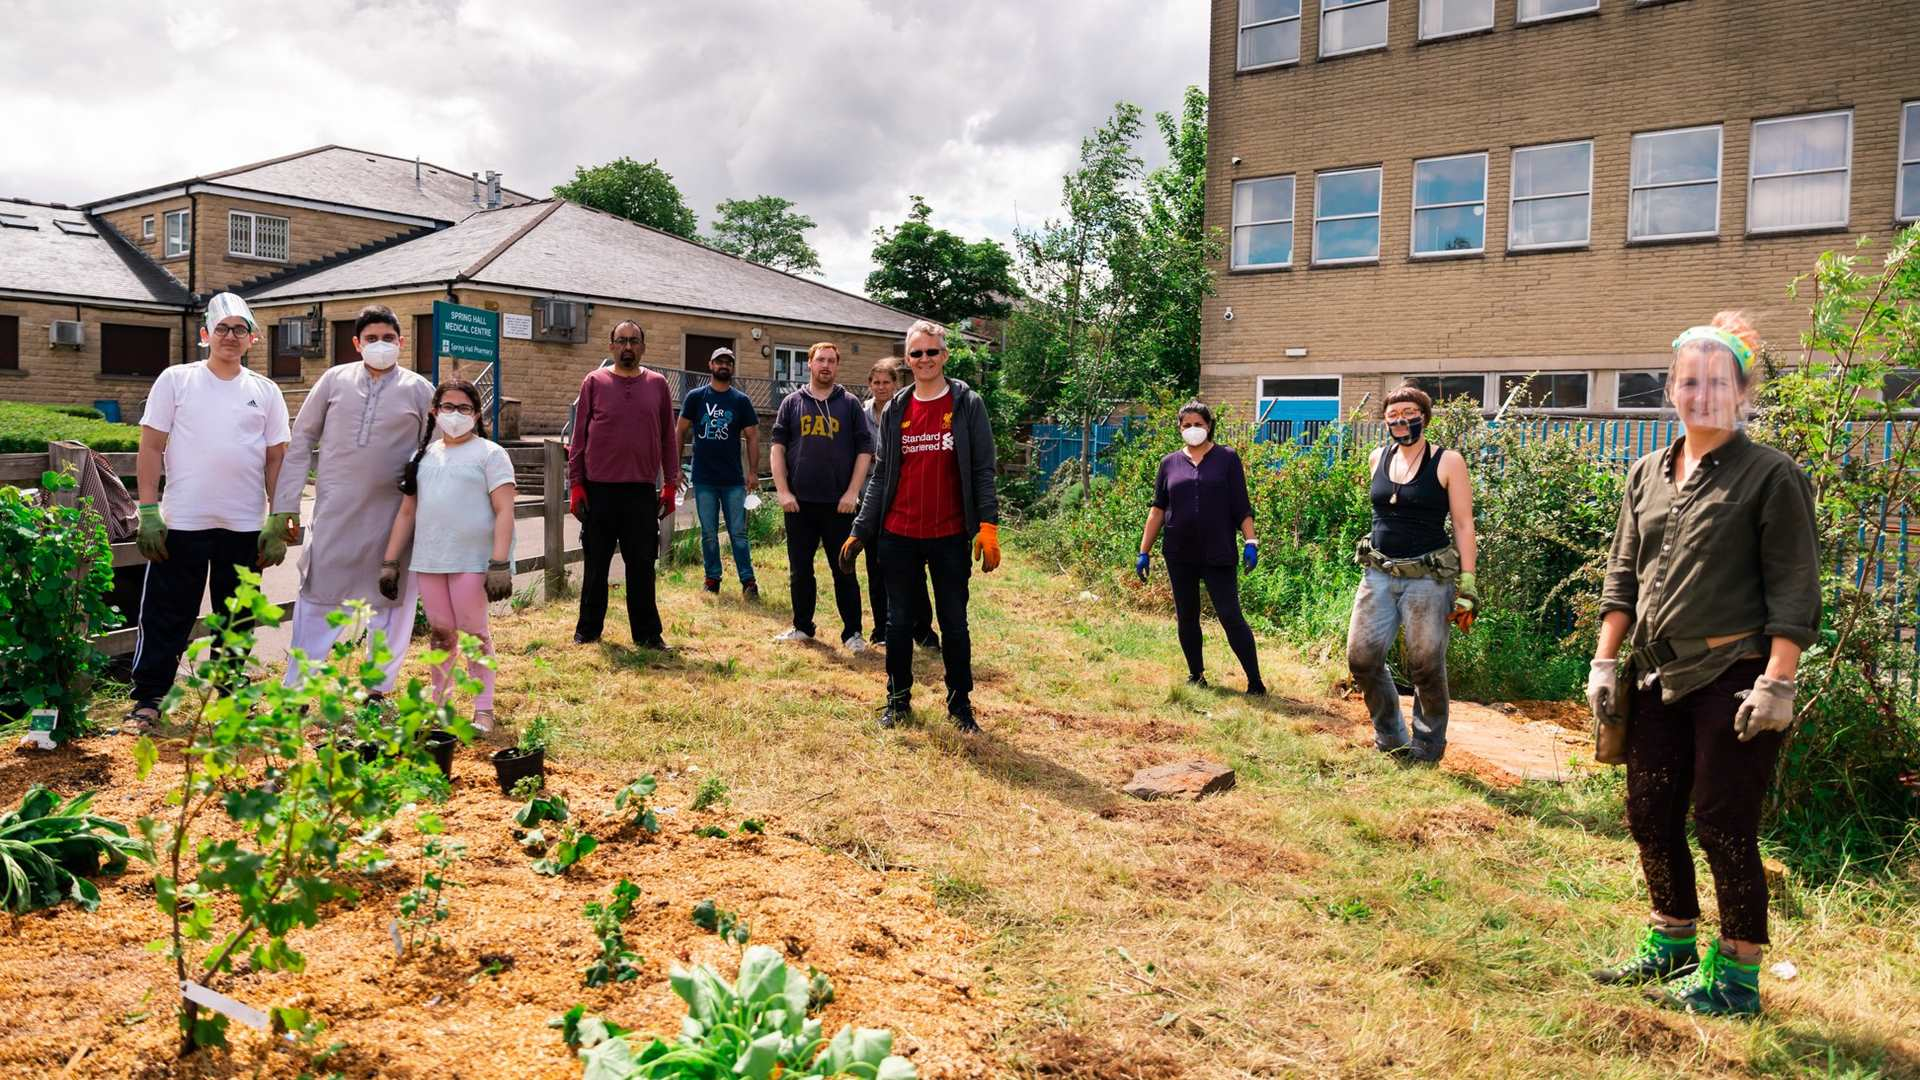 Group of people wearing masks and PPE standing at a distance from one and other in a community garden